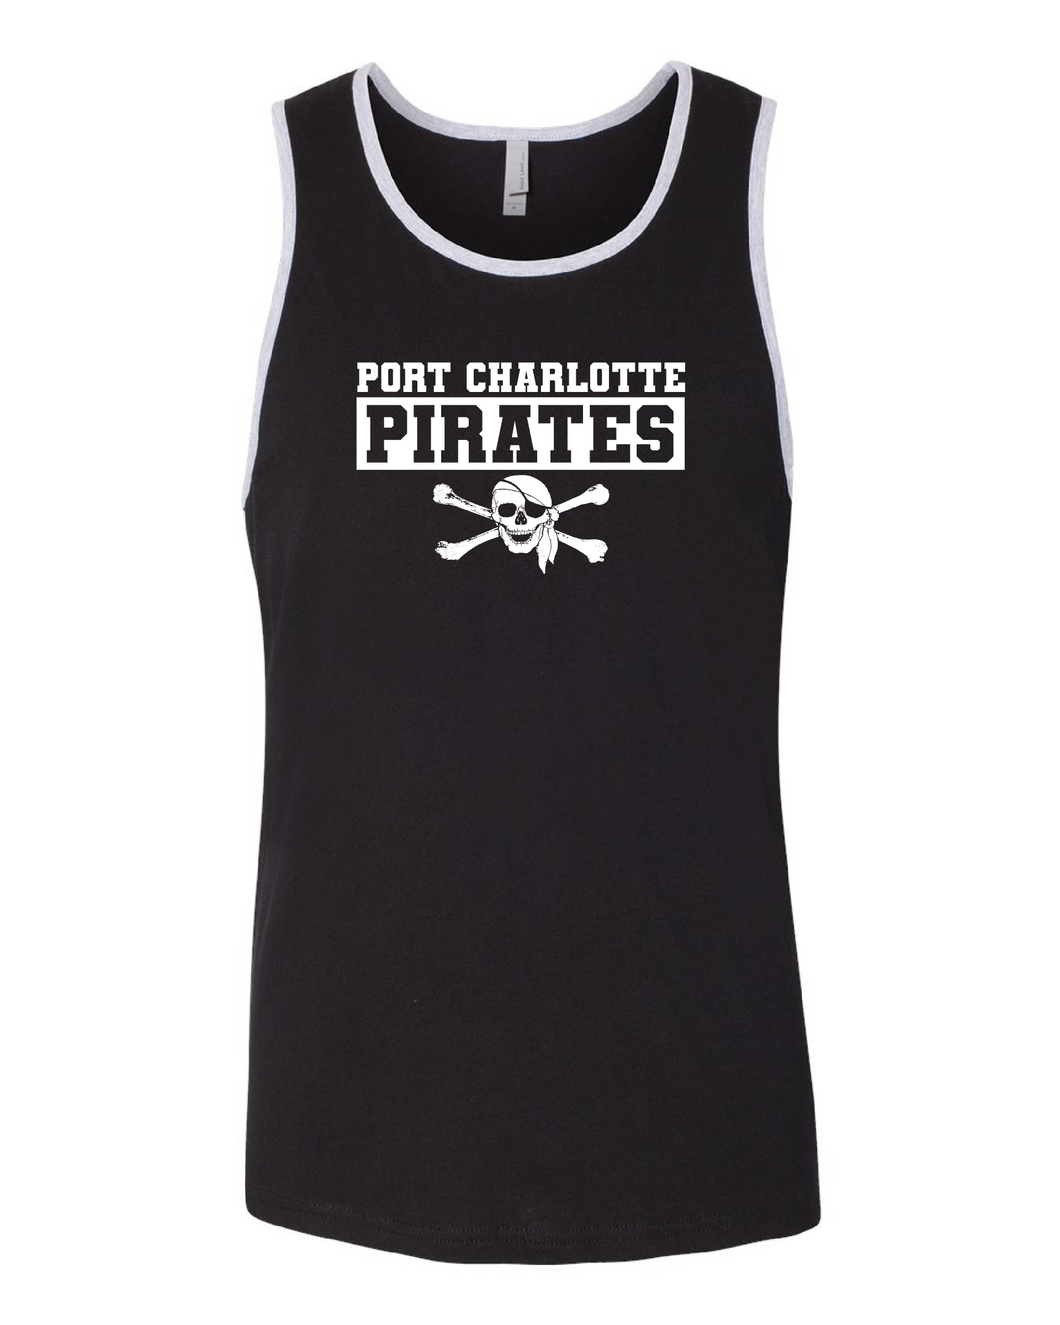 BLACK AND GREY PIRATES TANK